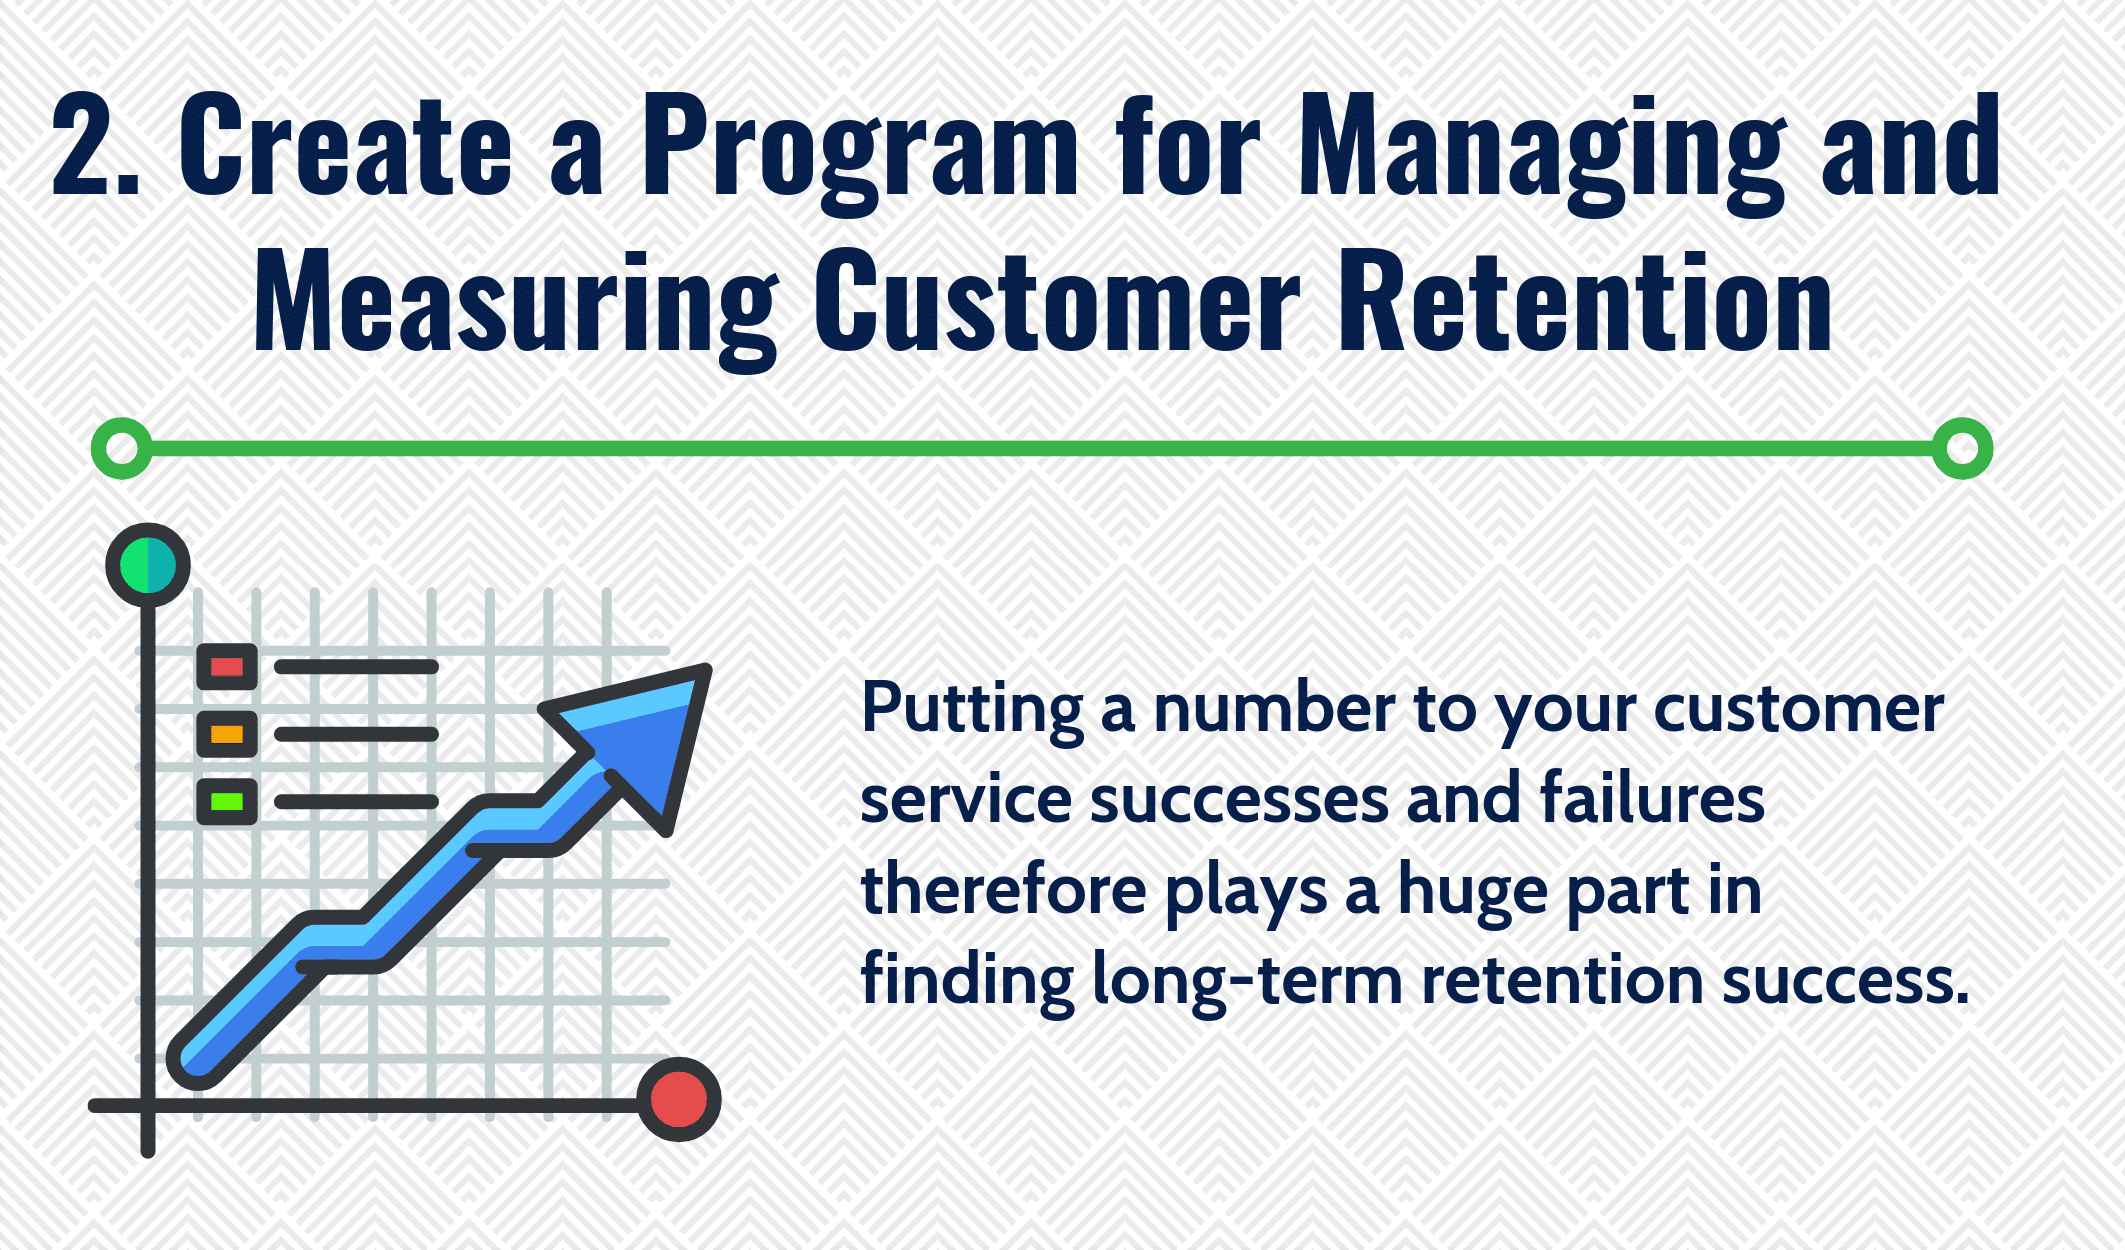 Create a Program for Managing and Measuring Customer Retention